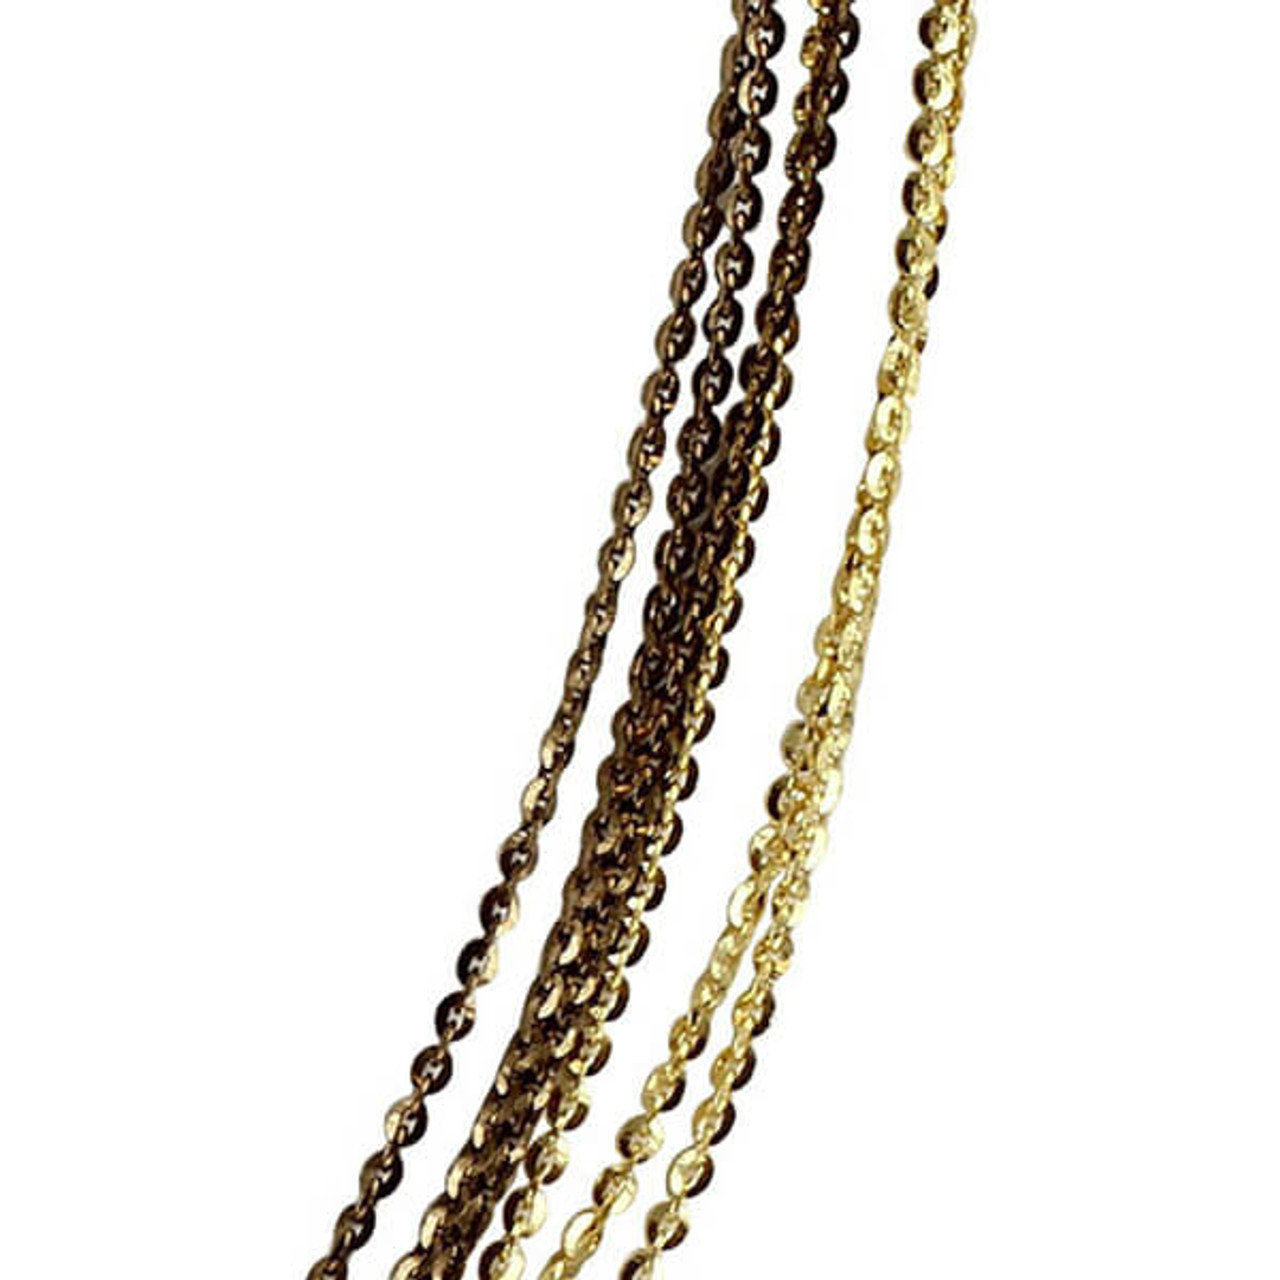 Rhodium Plated Silver Omega Chain Necklace